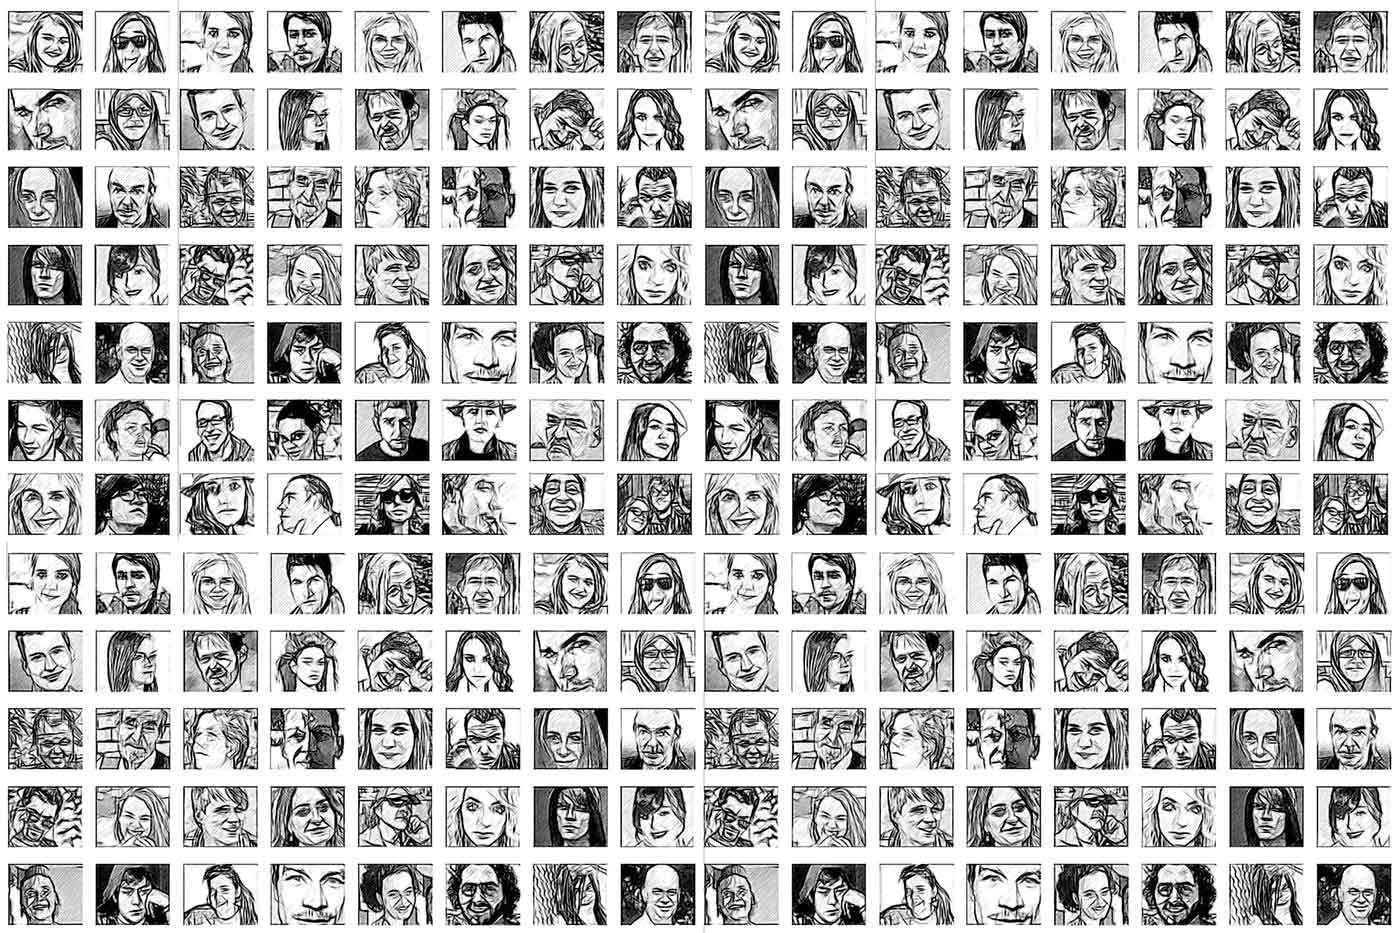 Montage of faces